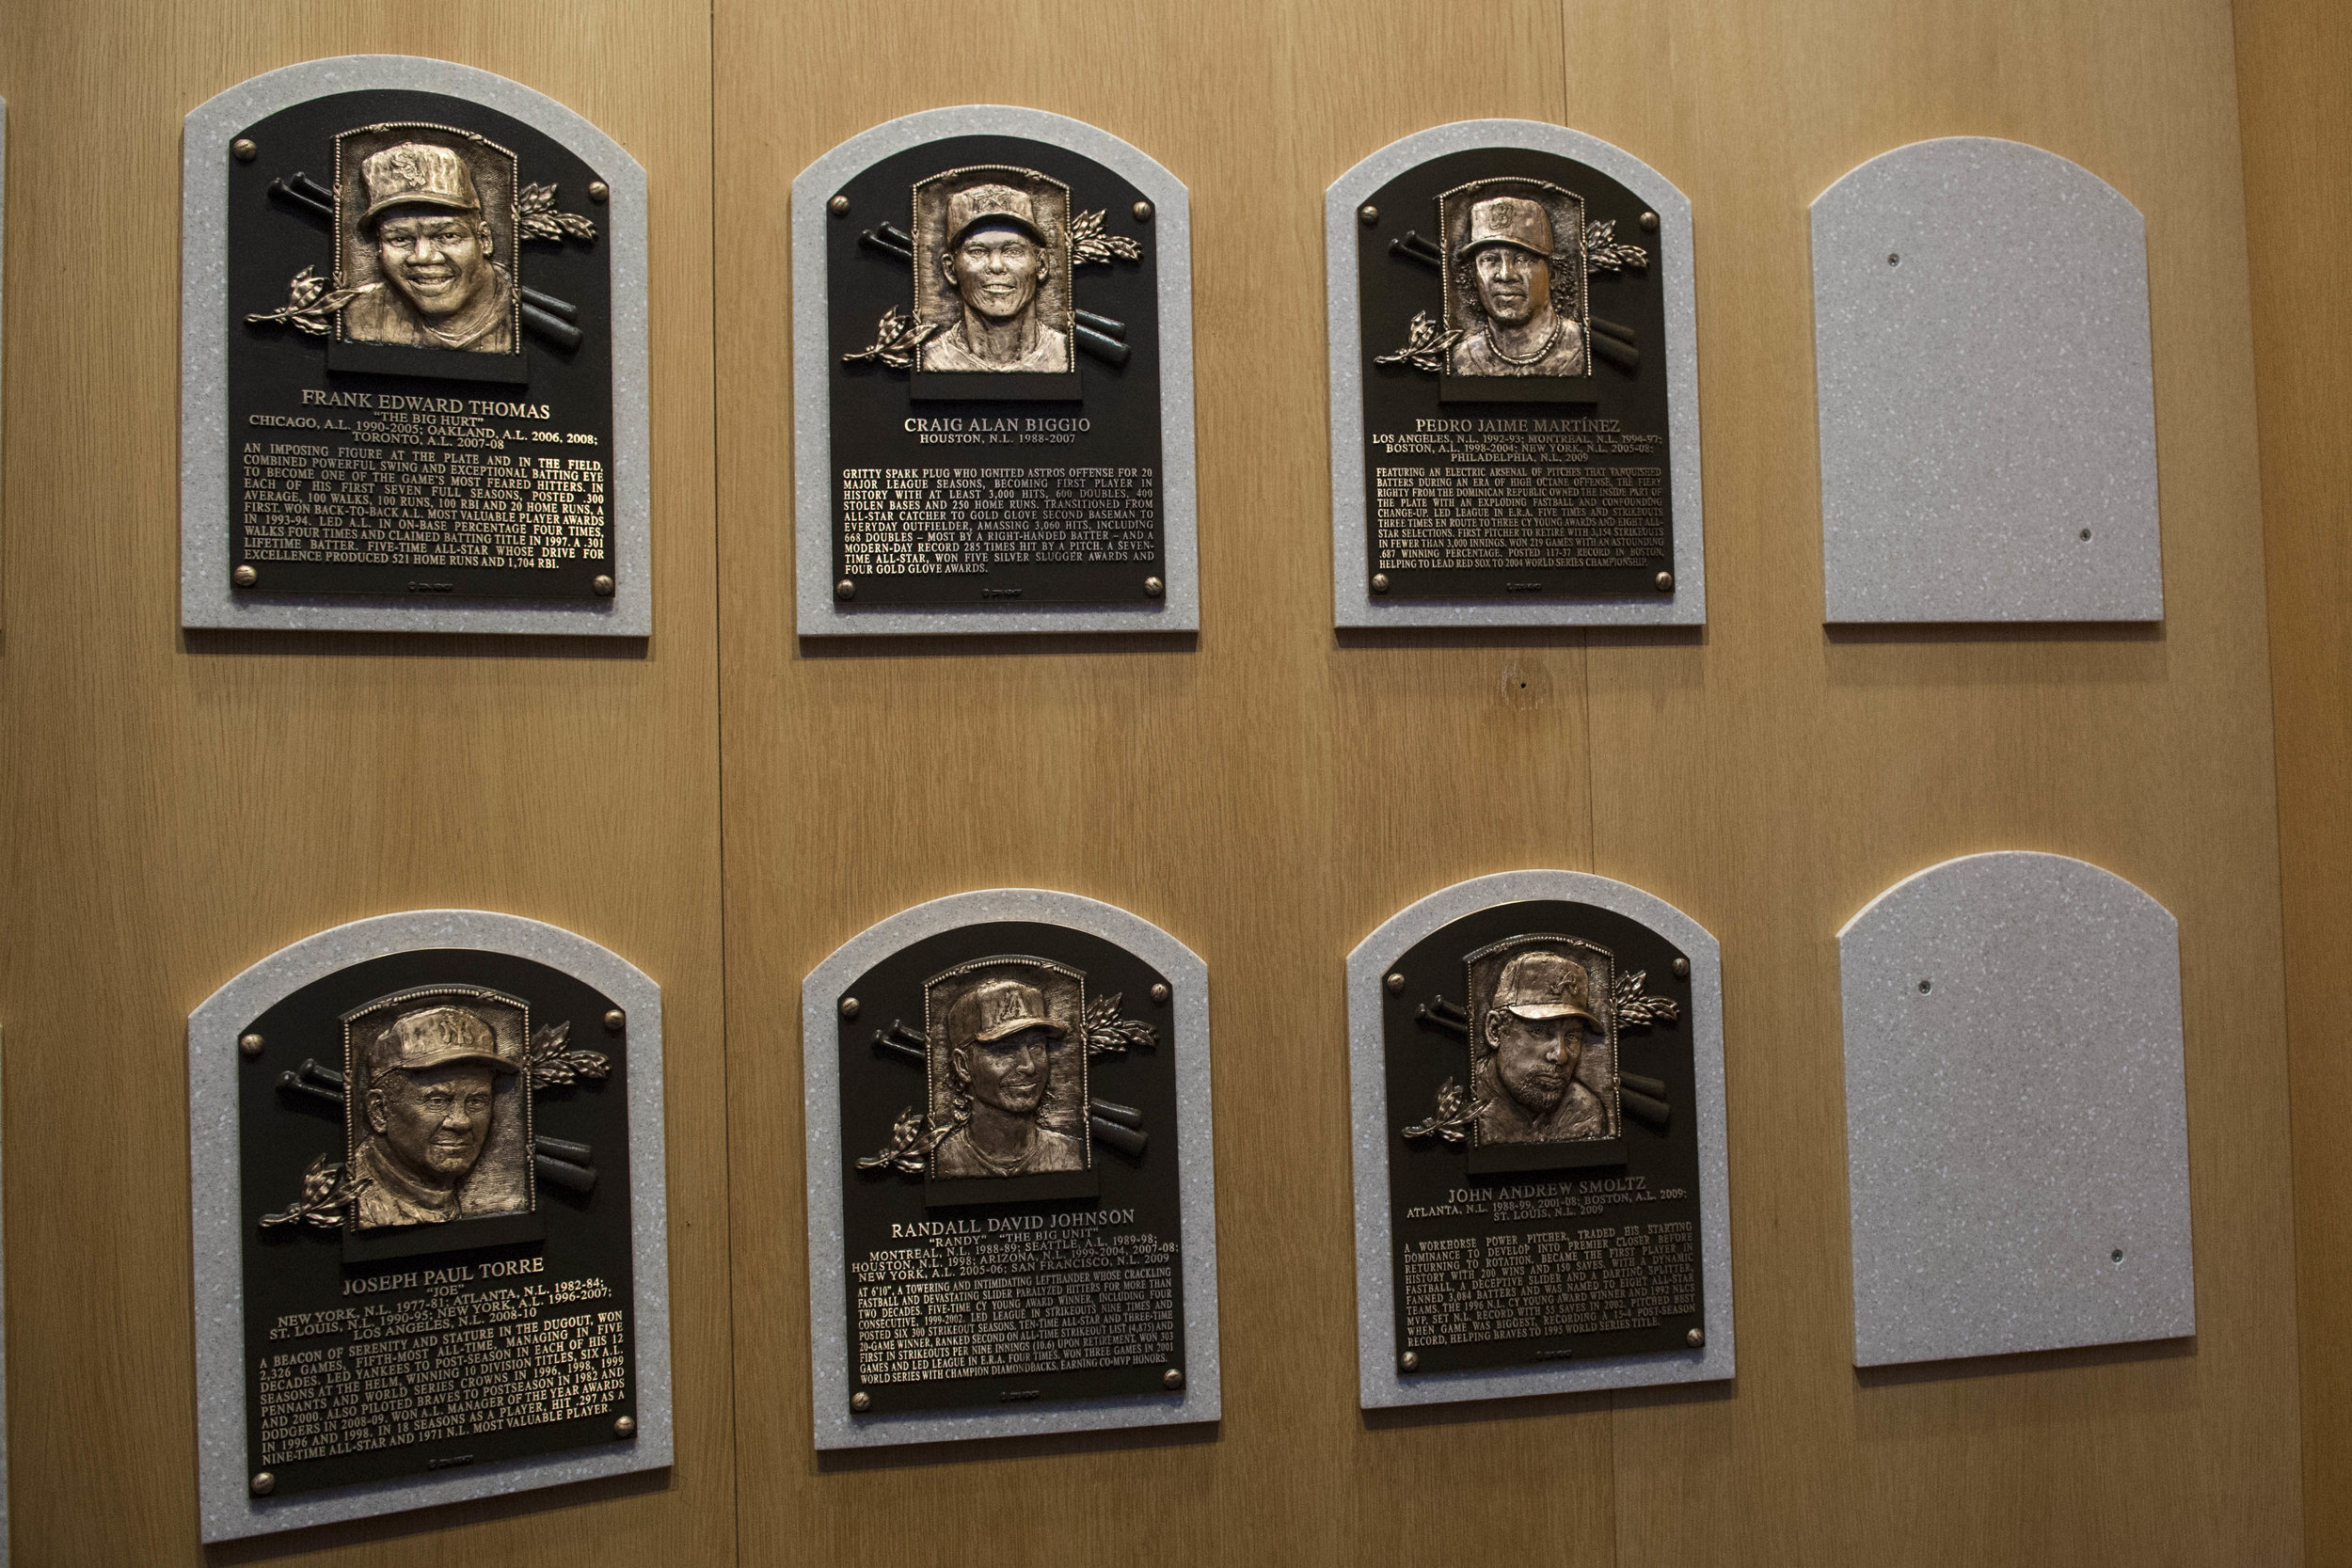 8720137-mlb-baseball-hall-of-fame-induction-ceremony.jpeg